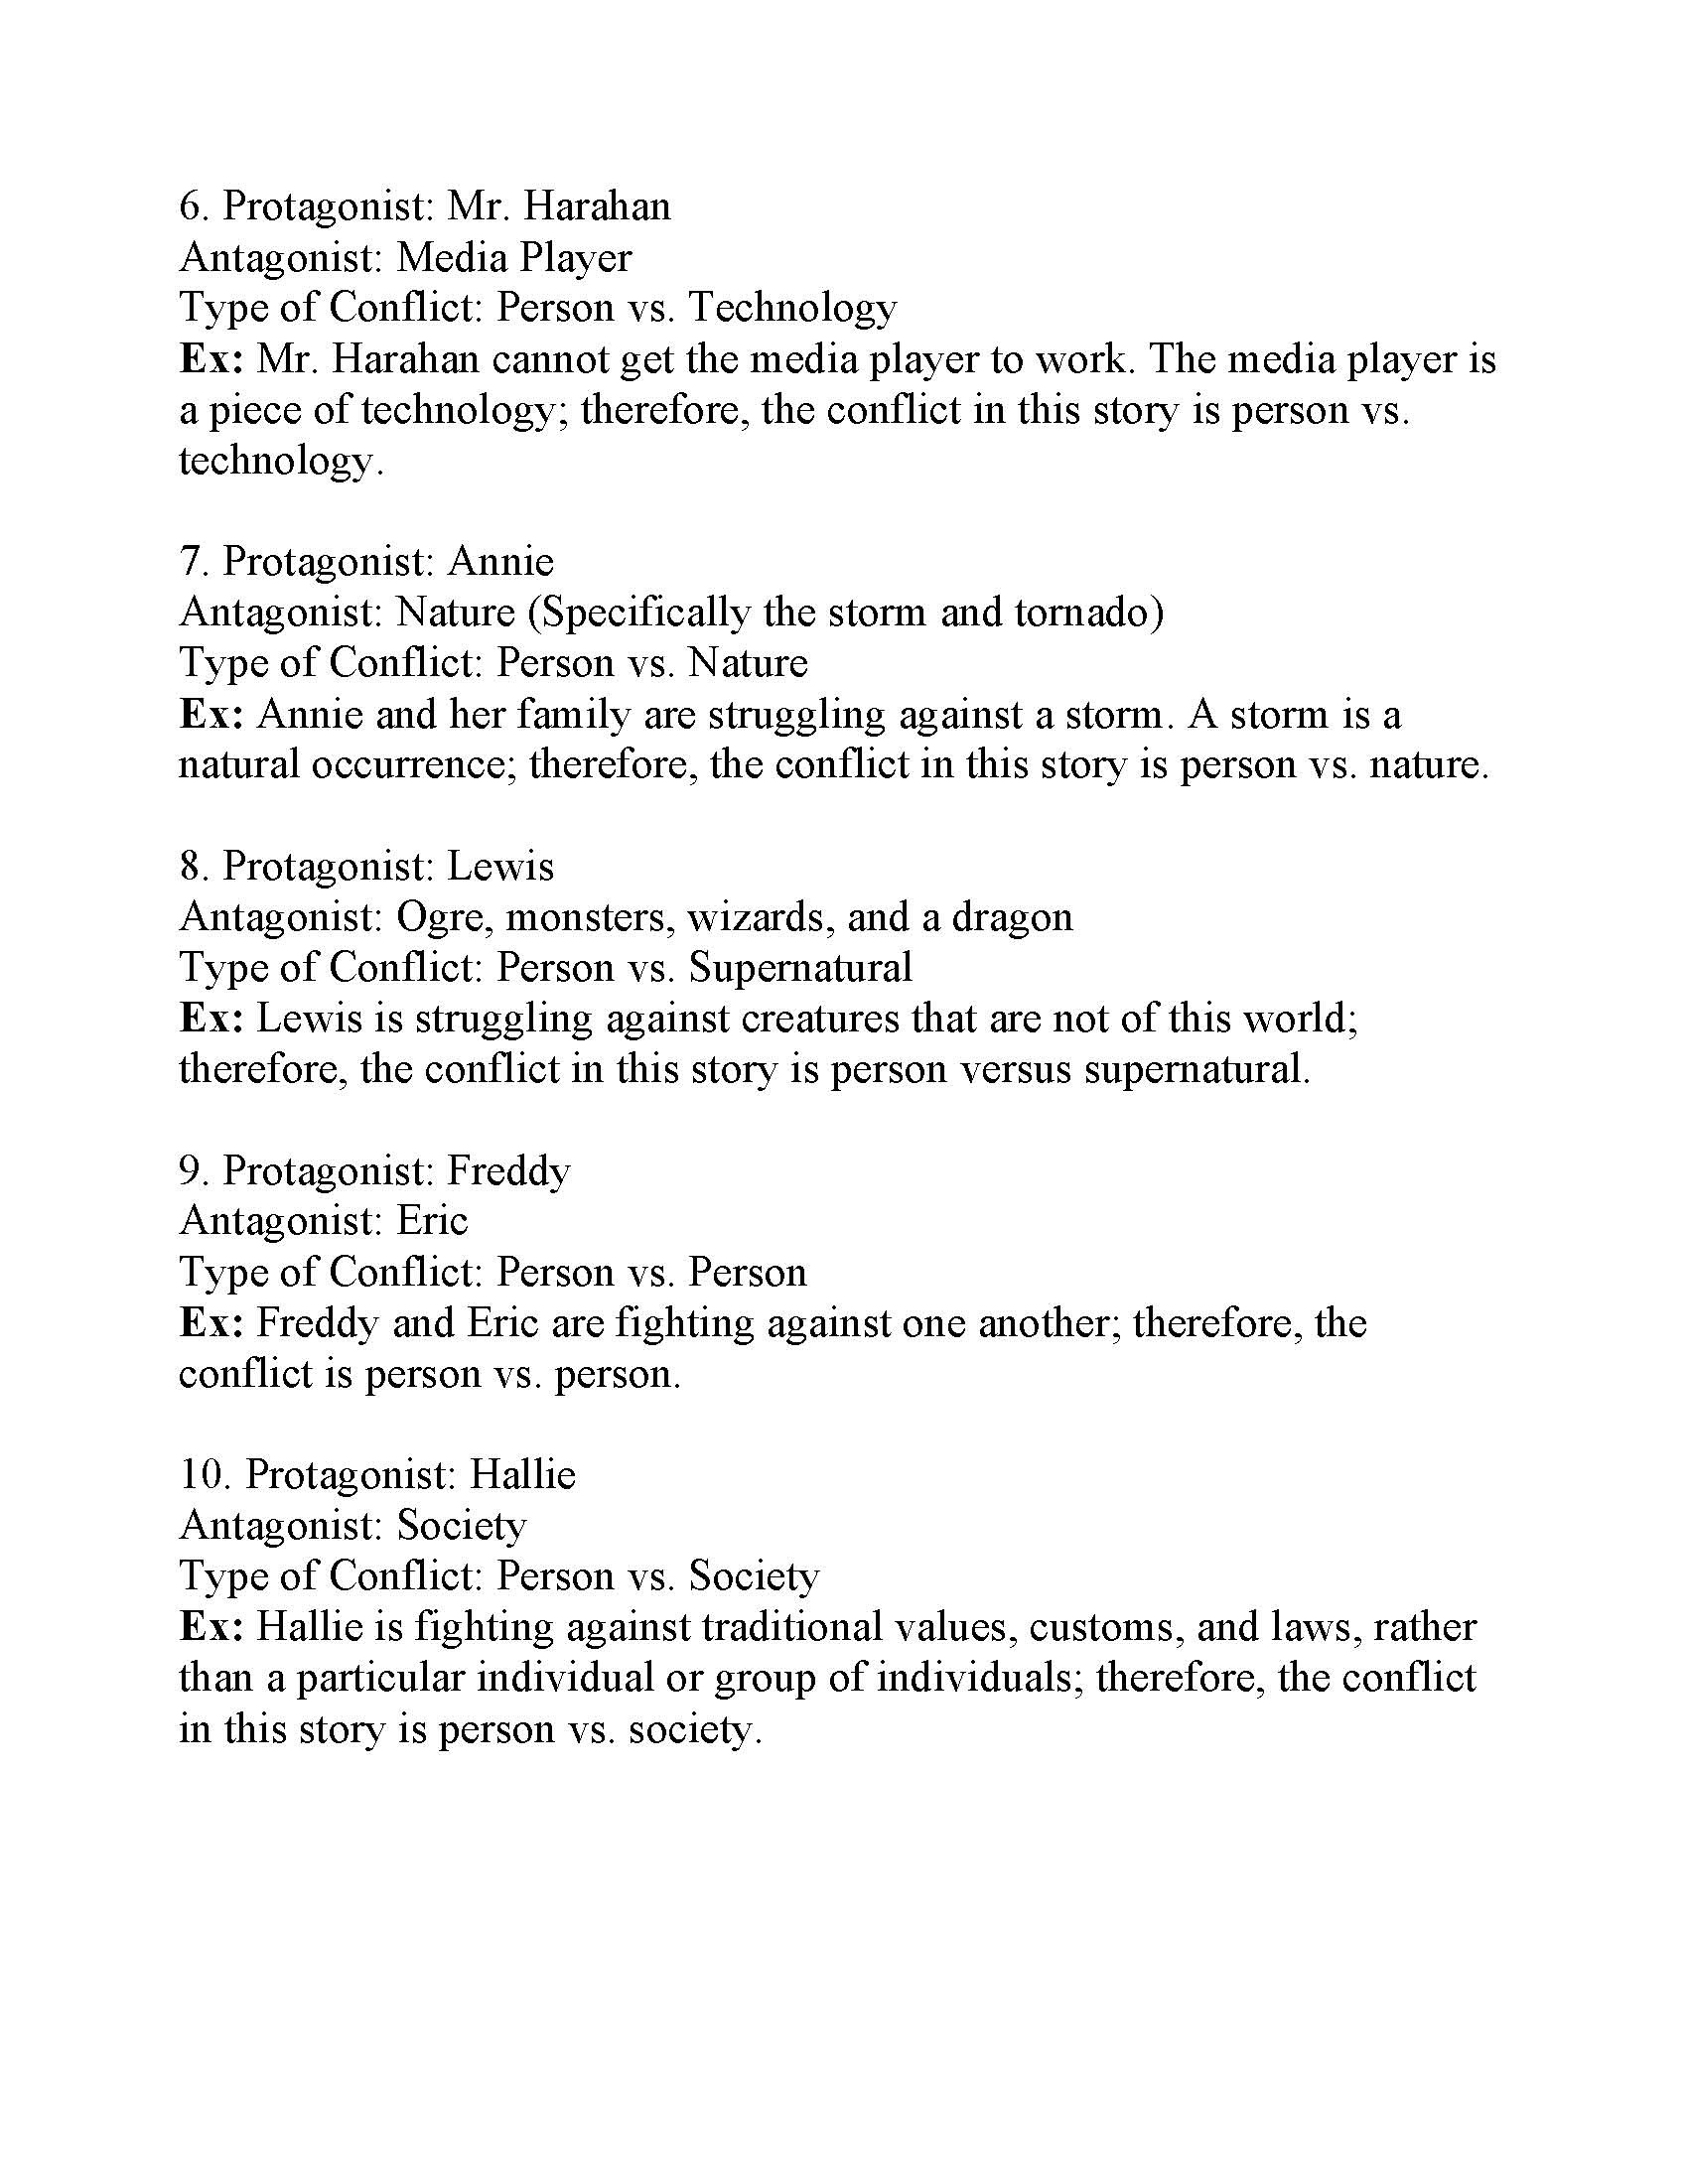 Types Of Conflict Worksheet 2 Answers